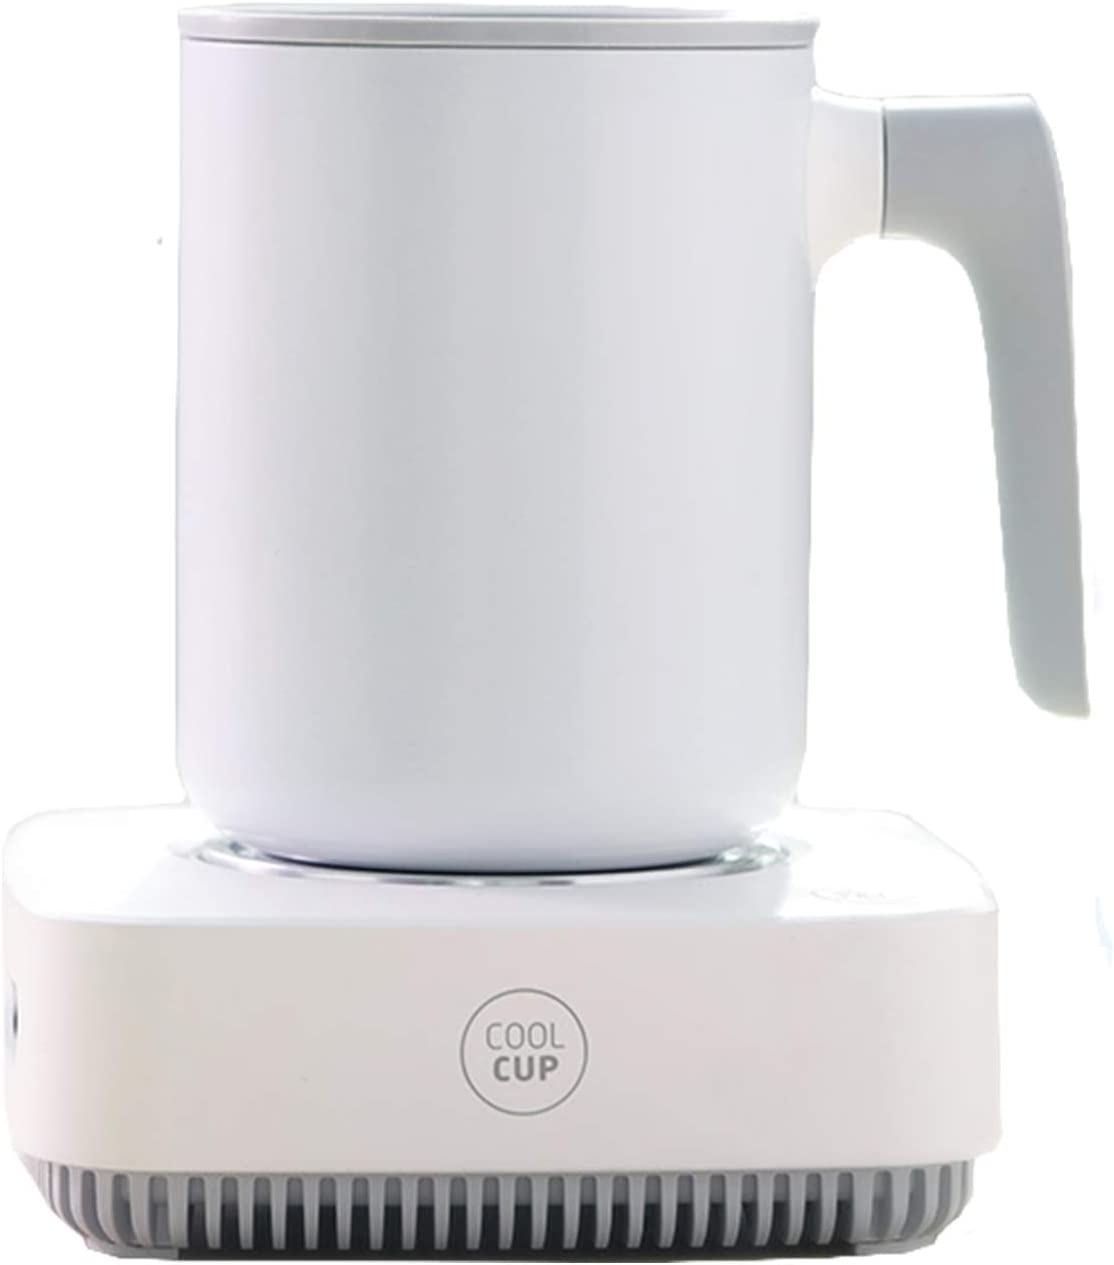 White Coffee Heater Cup Heater 2 in 1 USB Cup Cooler Heater Plate Office Desktop Home Heating Cooling Device for Cocoa Coffee Tea